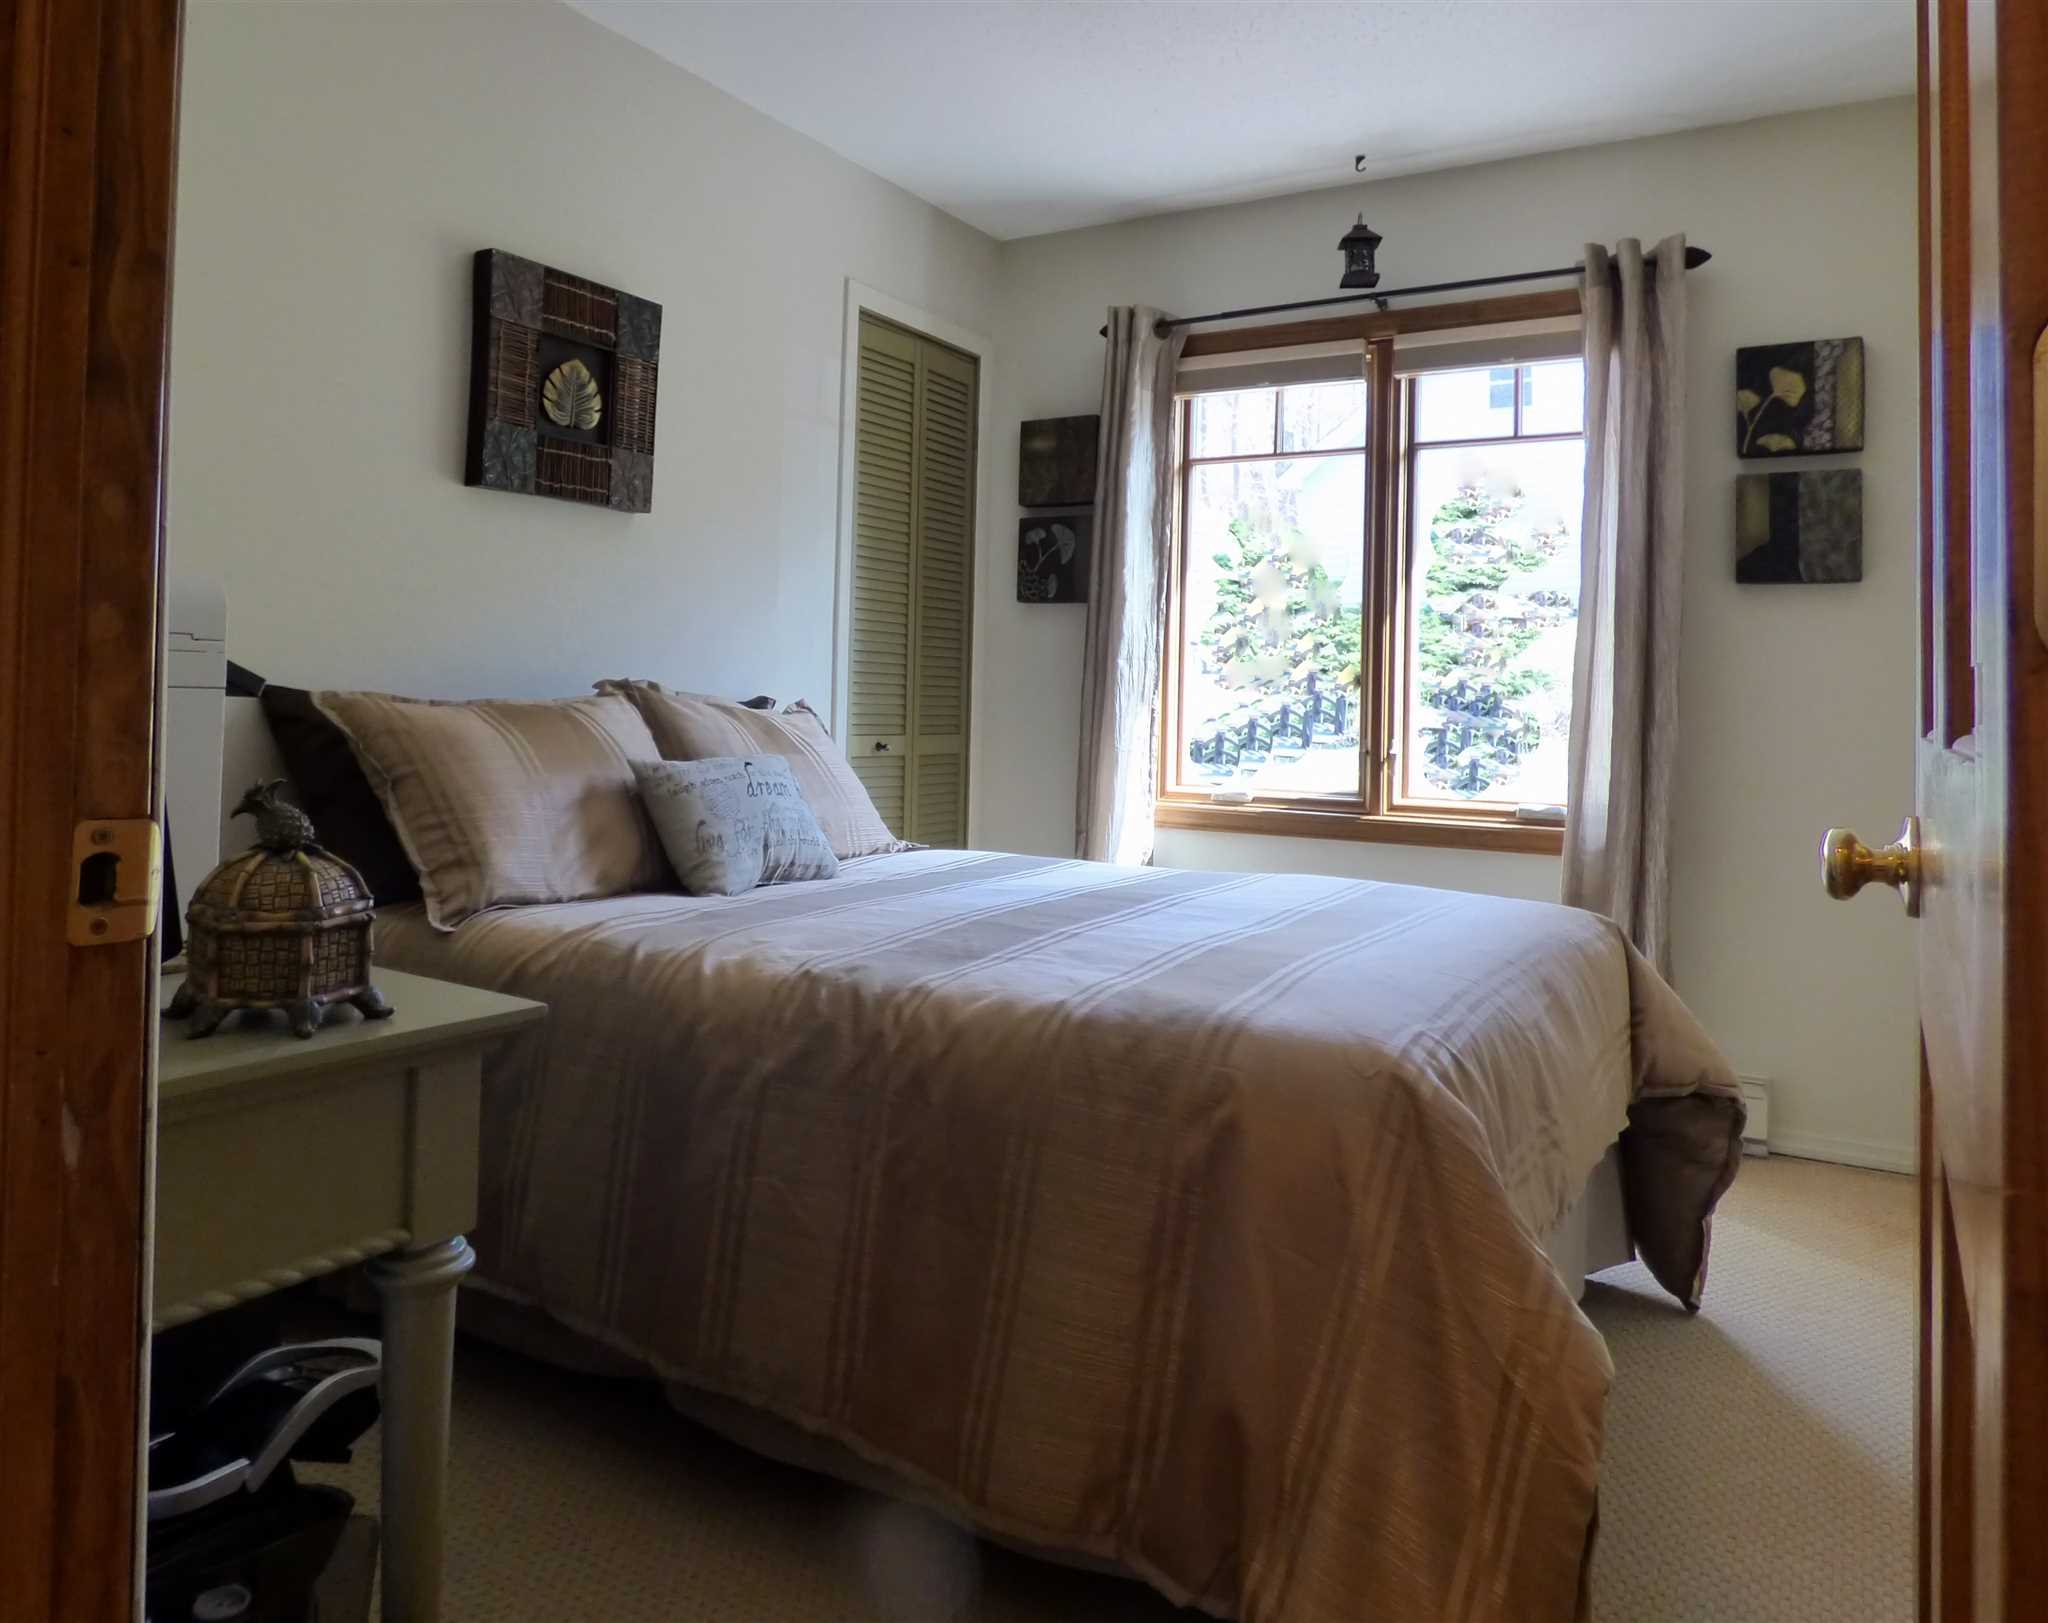 Additional photo for property listing at 33 PINE VIEW Road 33 PINE VIEW Road Fishkill, New York 12524 United States